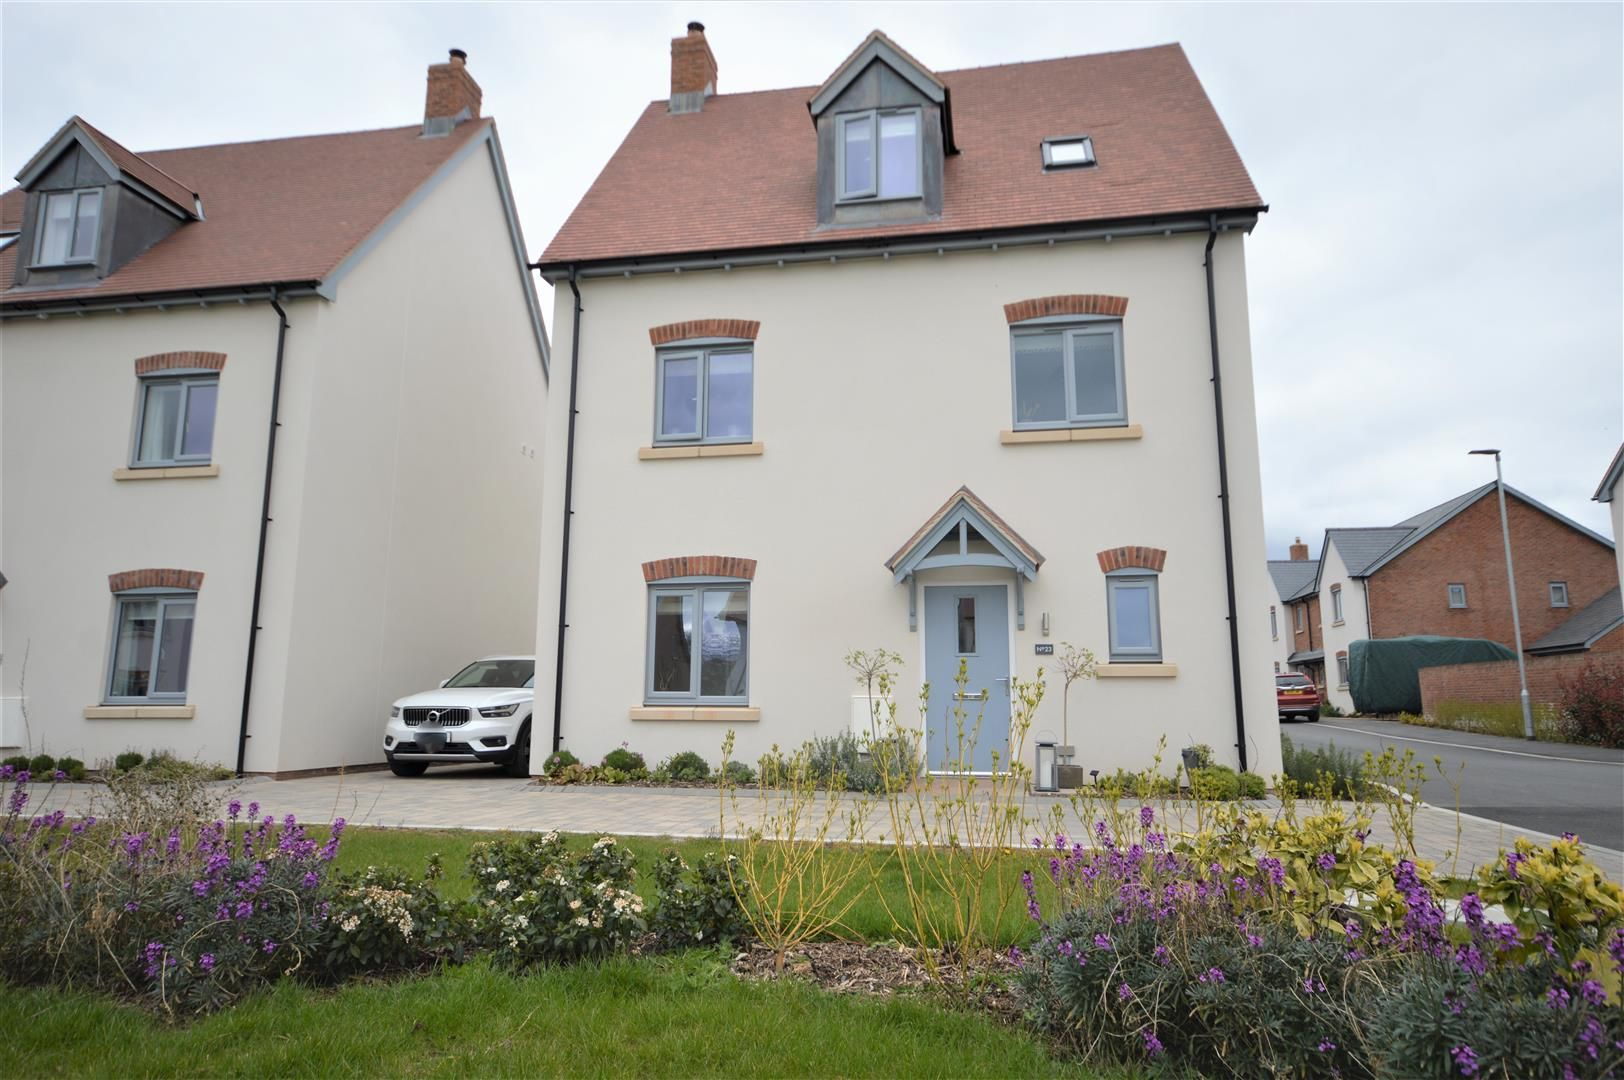 4 bed detached for sale in Weobley 24